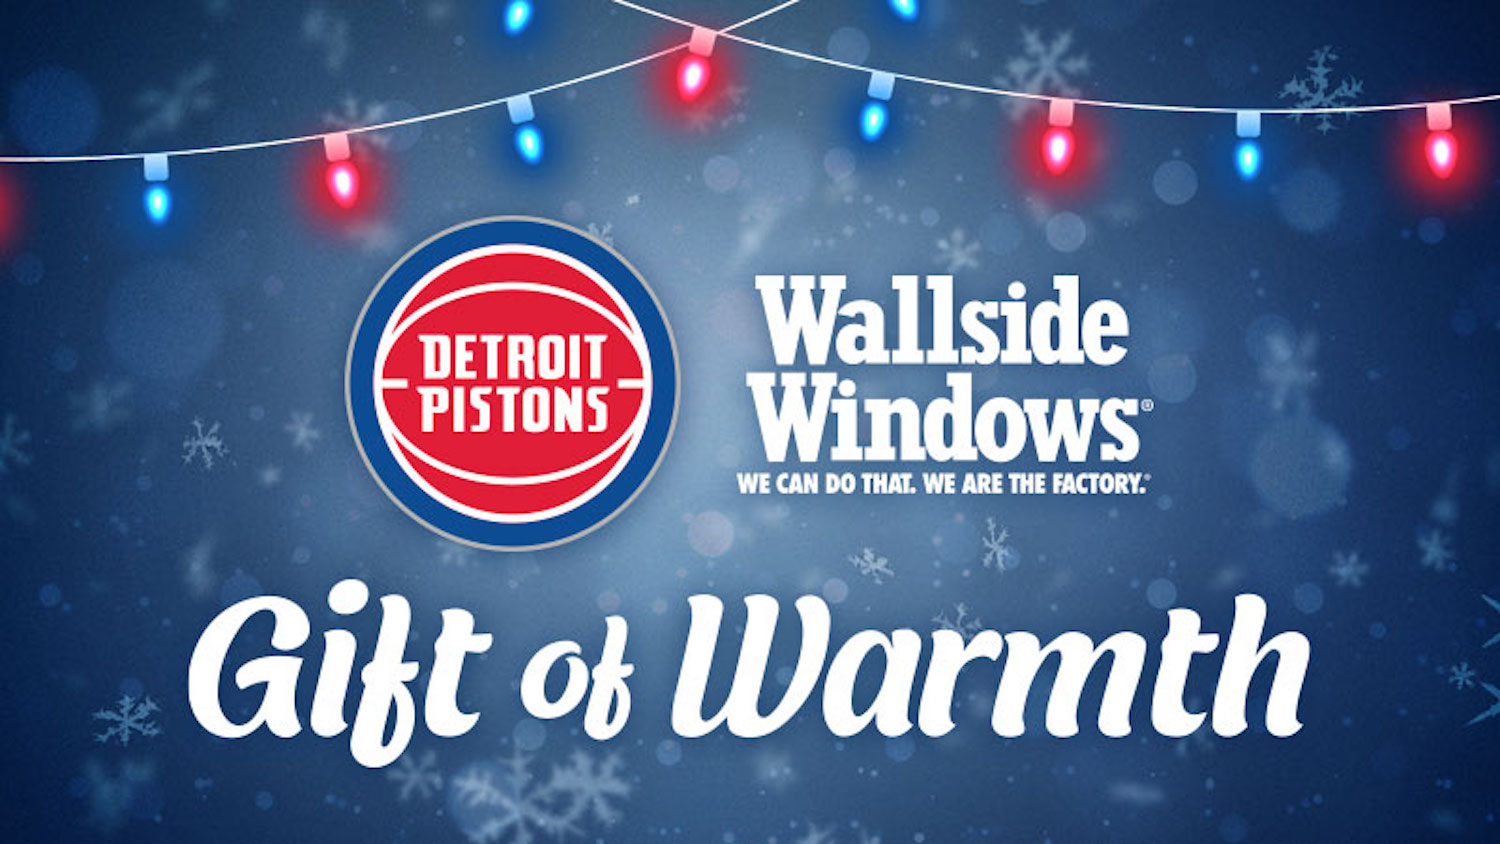 We're working with the Detroit Pistons to give the Gift of Warmth this winter. Nominate a family to win up to $5,000 in new windows while you can.